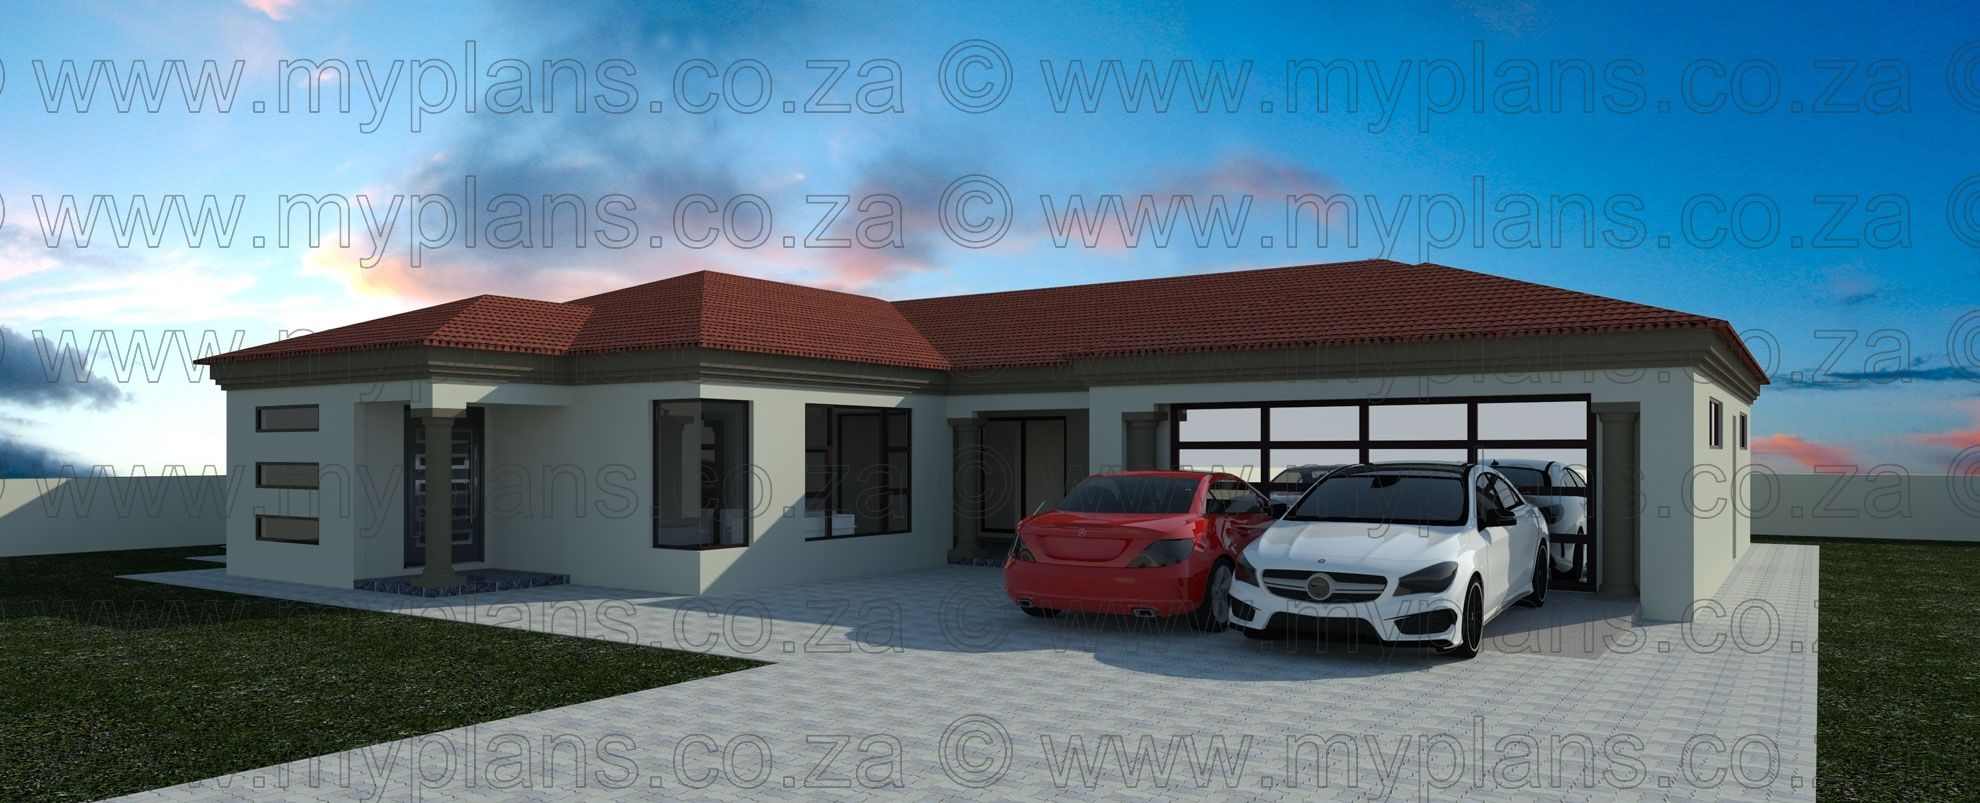 3 Bedroom House Plans Mlb 056s House Plans House Plan Gallery Family House Plans